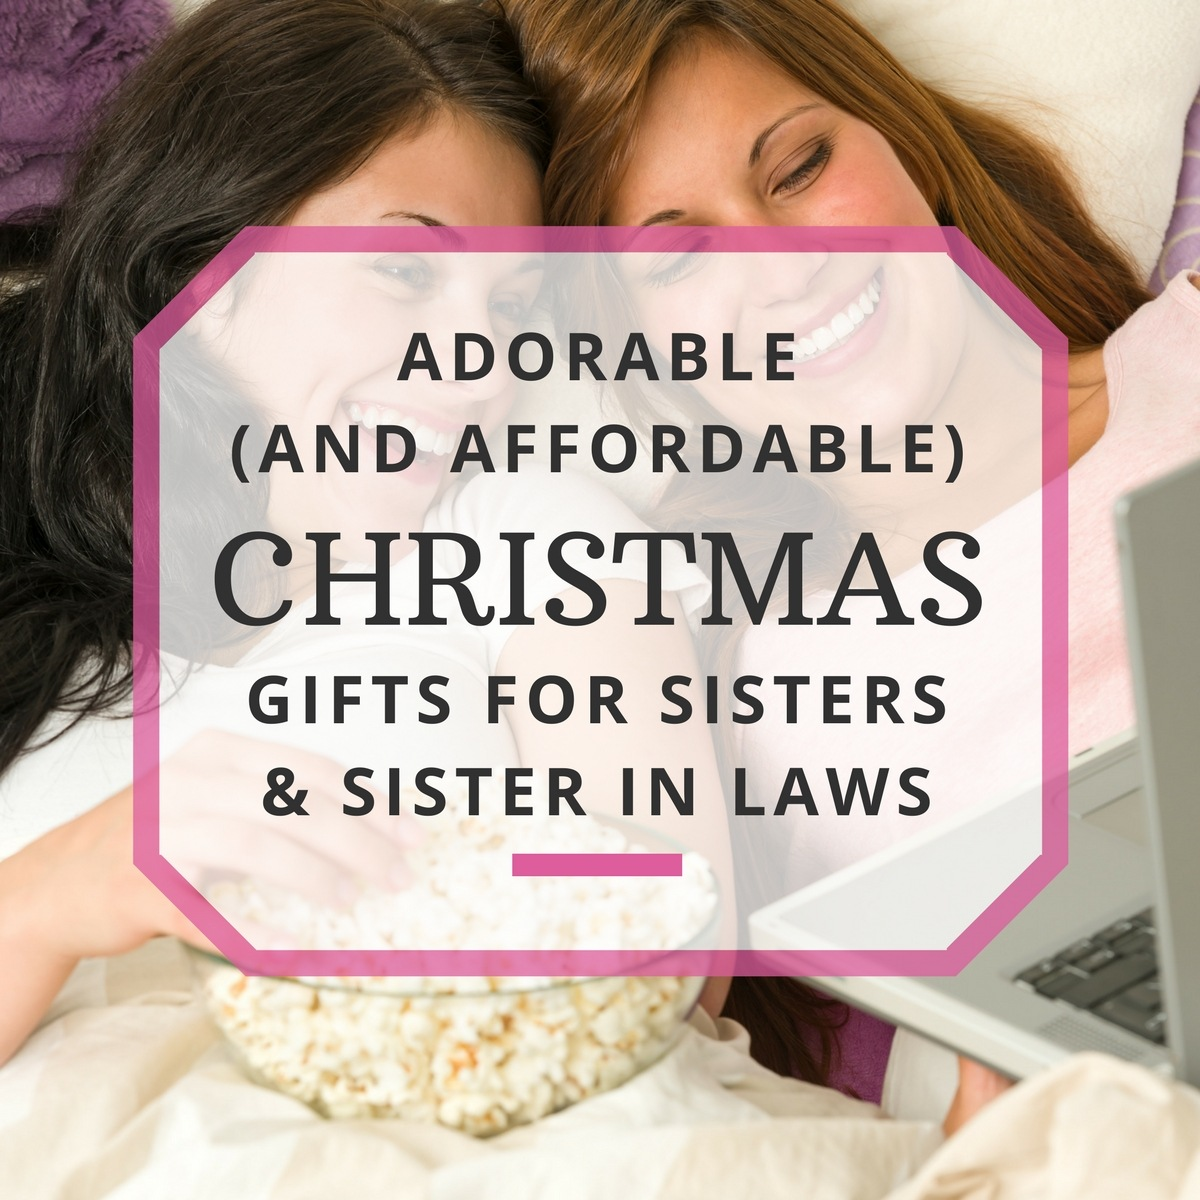 Super manly uncle gift ideas the best gifts for uncles adorable and affordable christmas gifts for sisters sister in laws negle